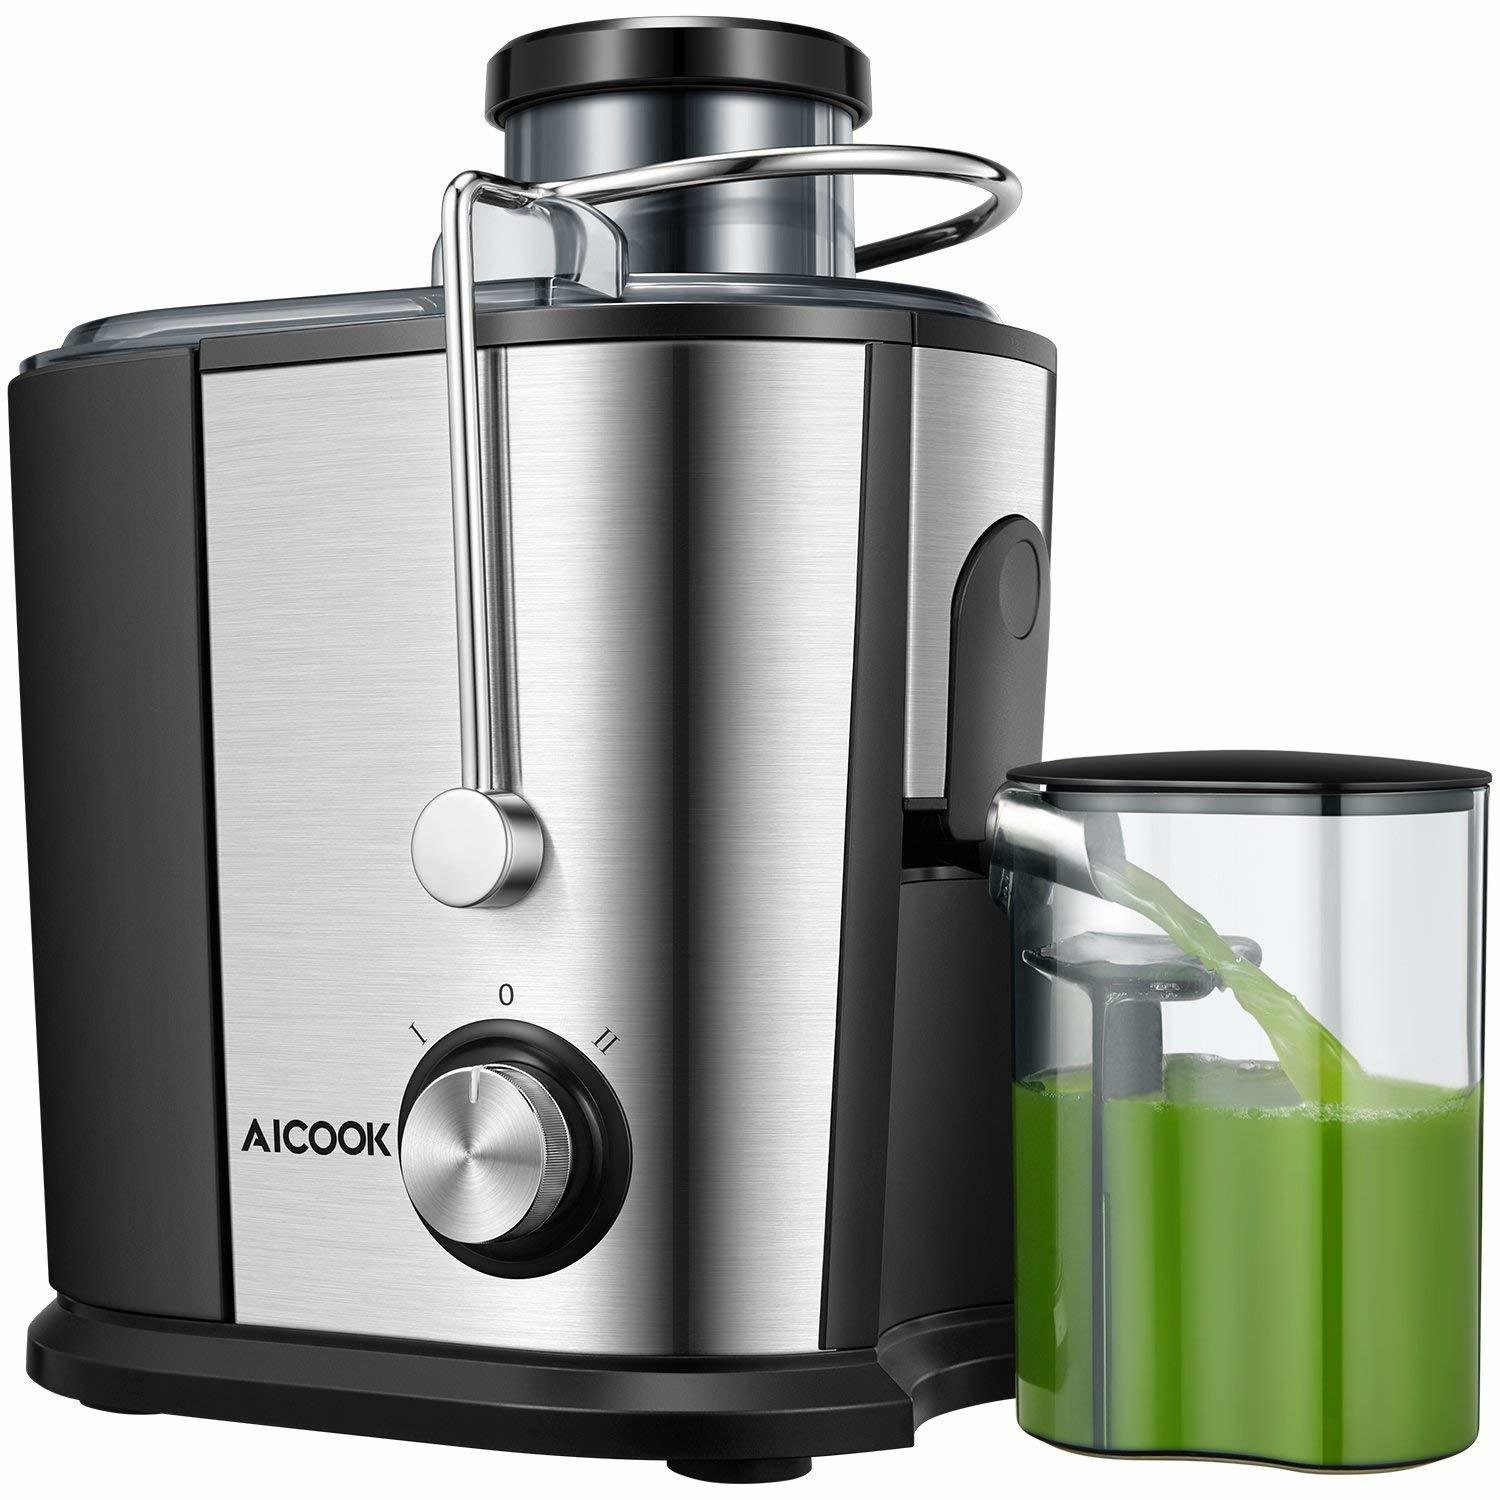 Juicer Compact Juice Extractor, Aicook Wide Mouth Juicer Machine BPA-Free, Dual Speed Setting Centrifugal Juicer with Anti-drip Function, Stainless Steel Juicer